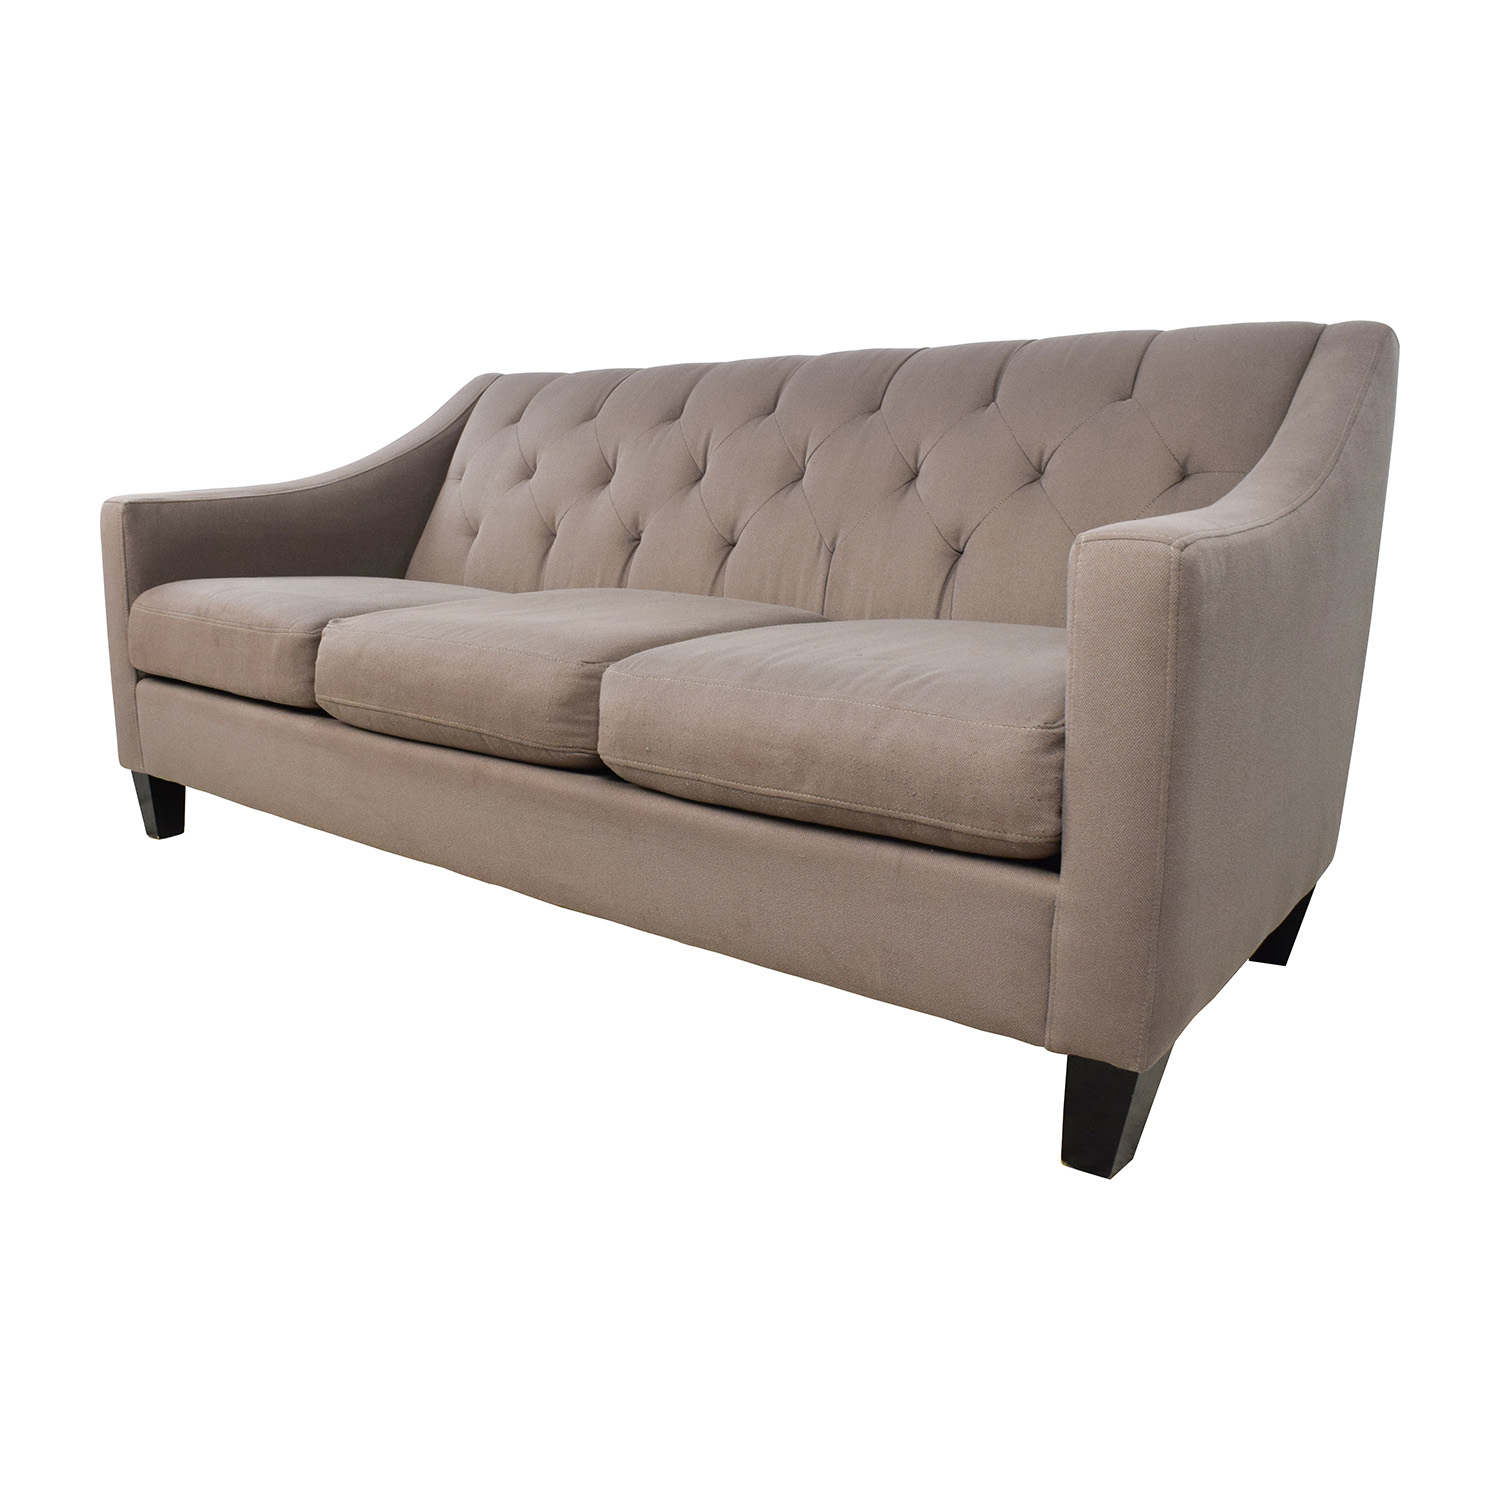 65% OFF Macy s Macy s Tufted Back Grey Couch Sofas